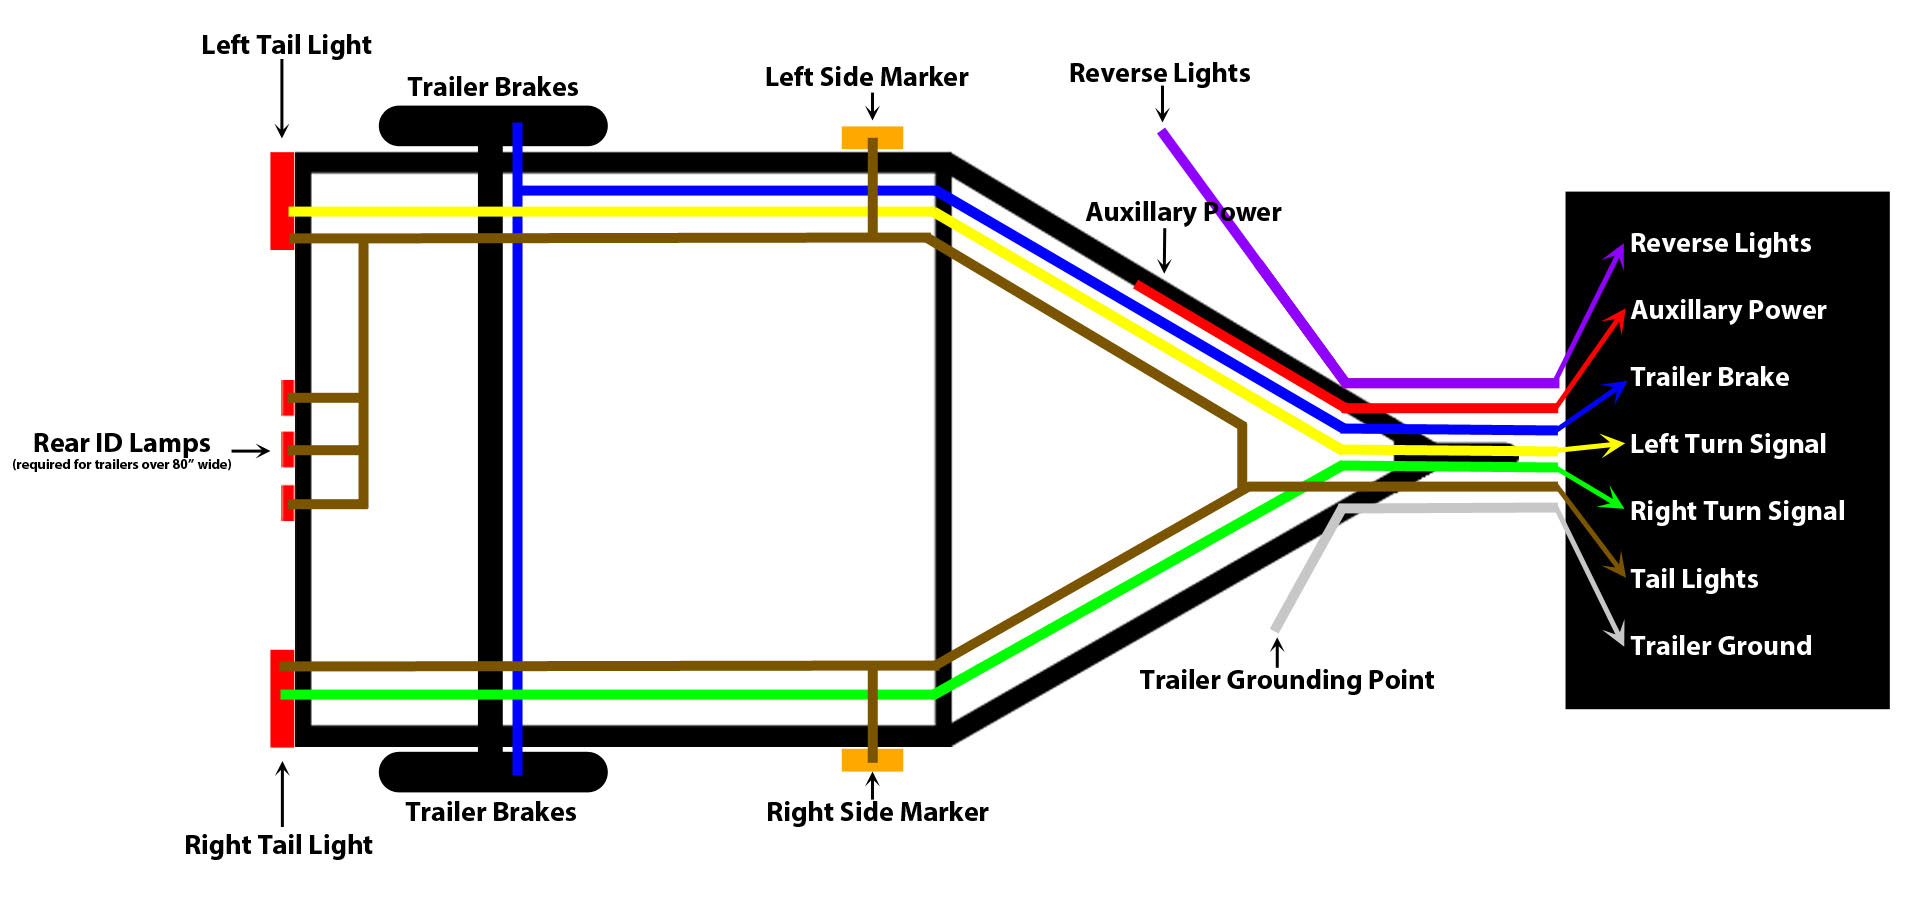 Diagram Magnetic Tow Light Wiring Diagram Full Version Hd Quality Wiring Diagram Homeswiring41 Bertellifabrizio It